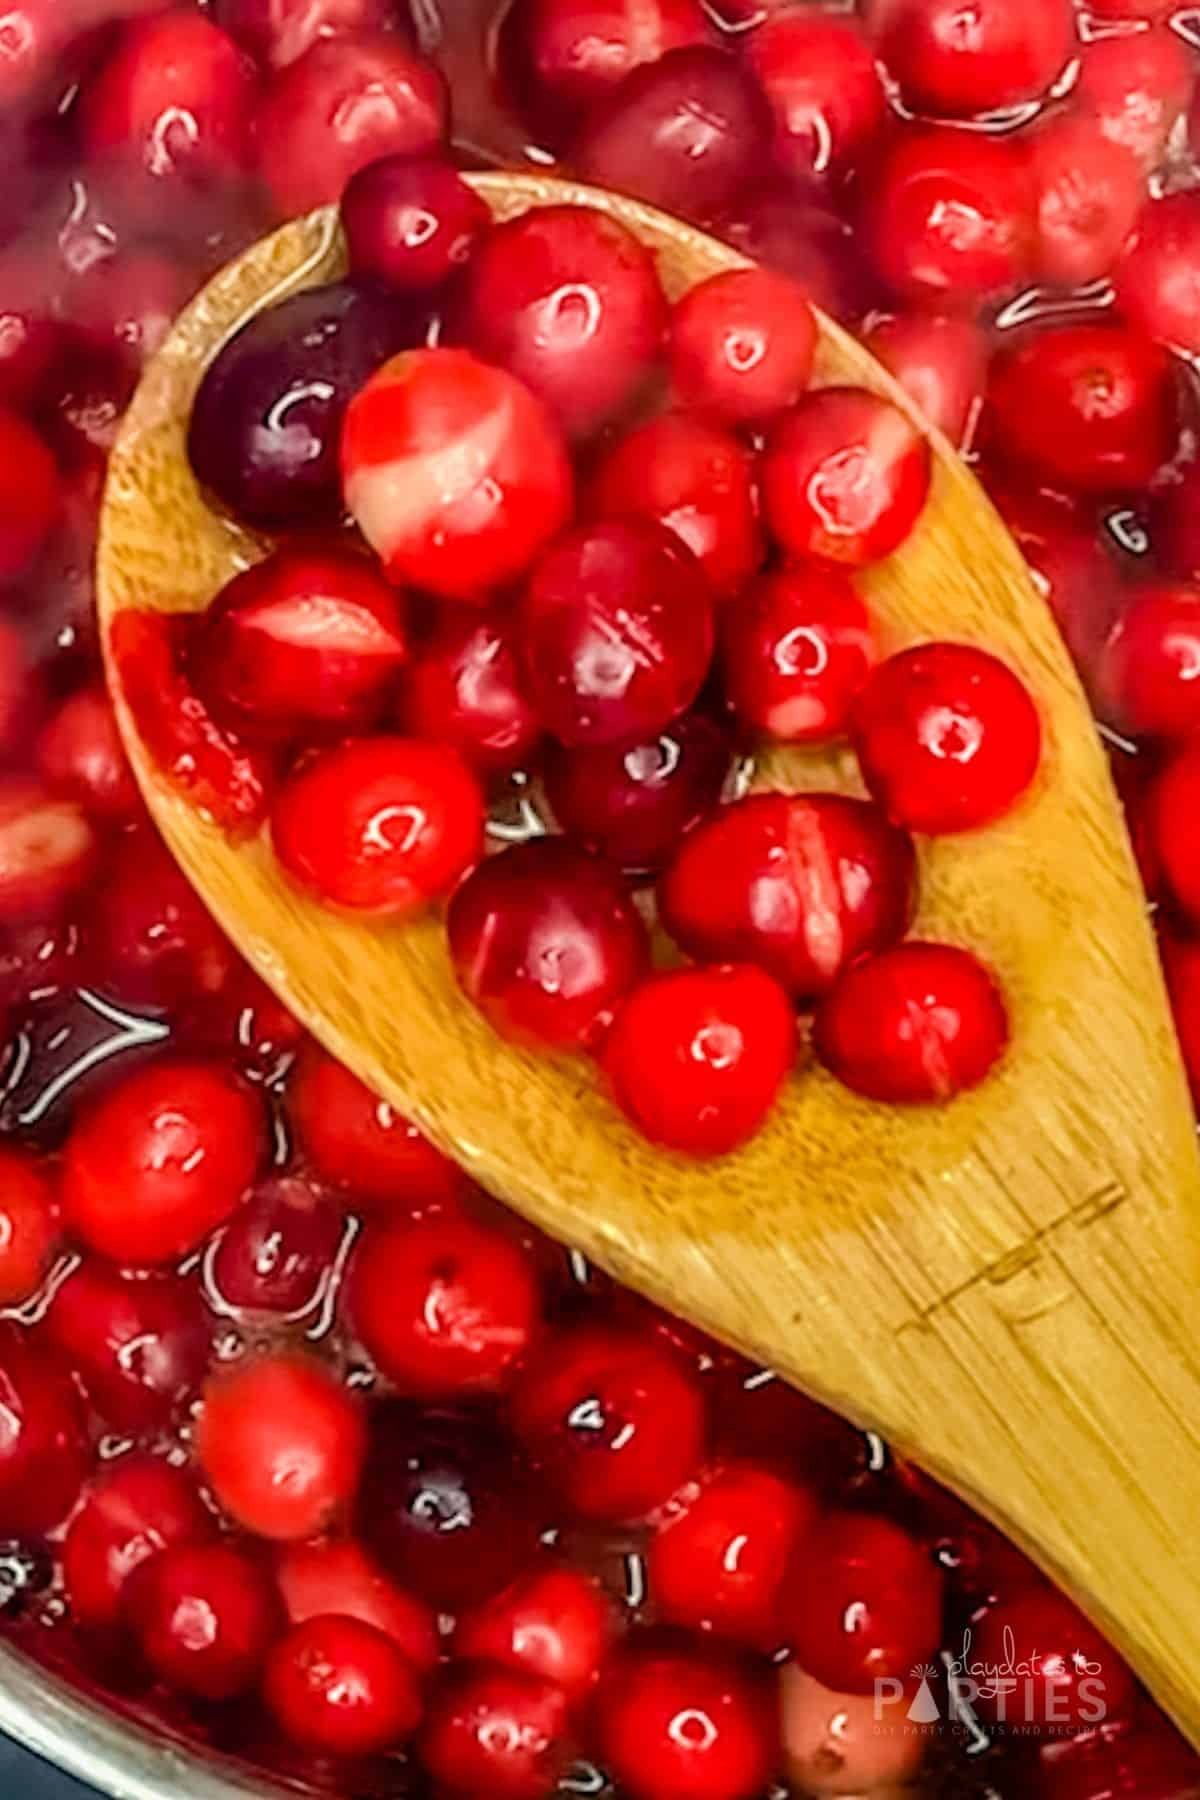 A wooden spoon with cranberries, some of which have popped.